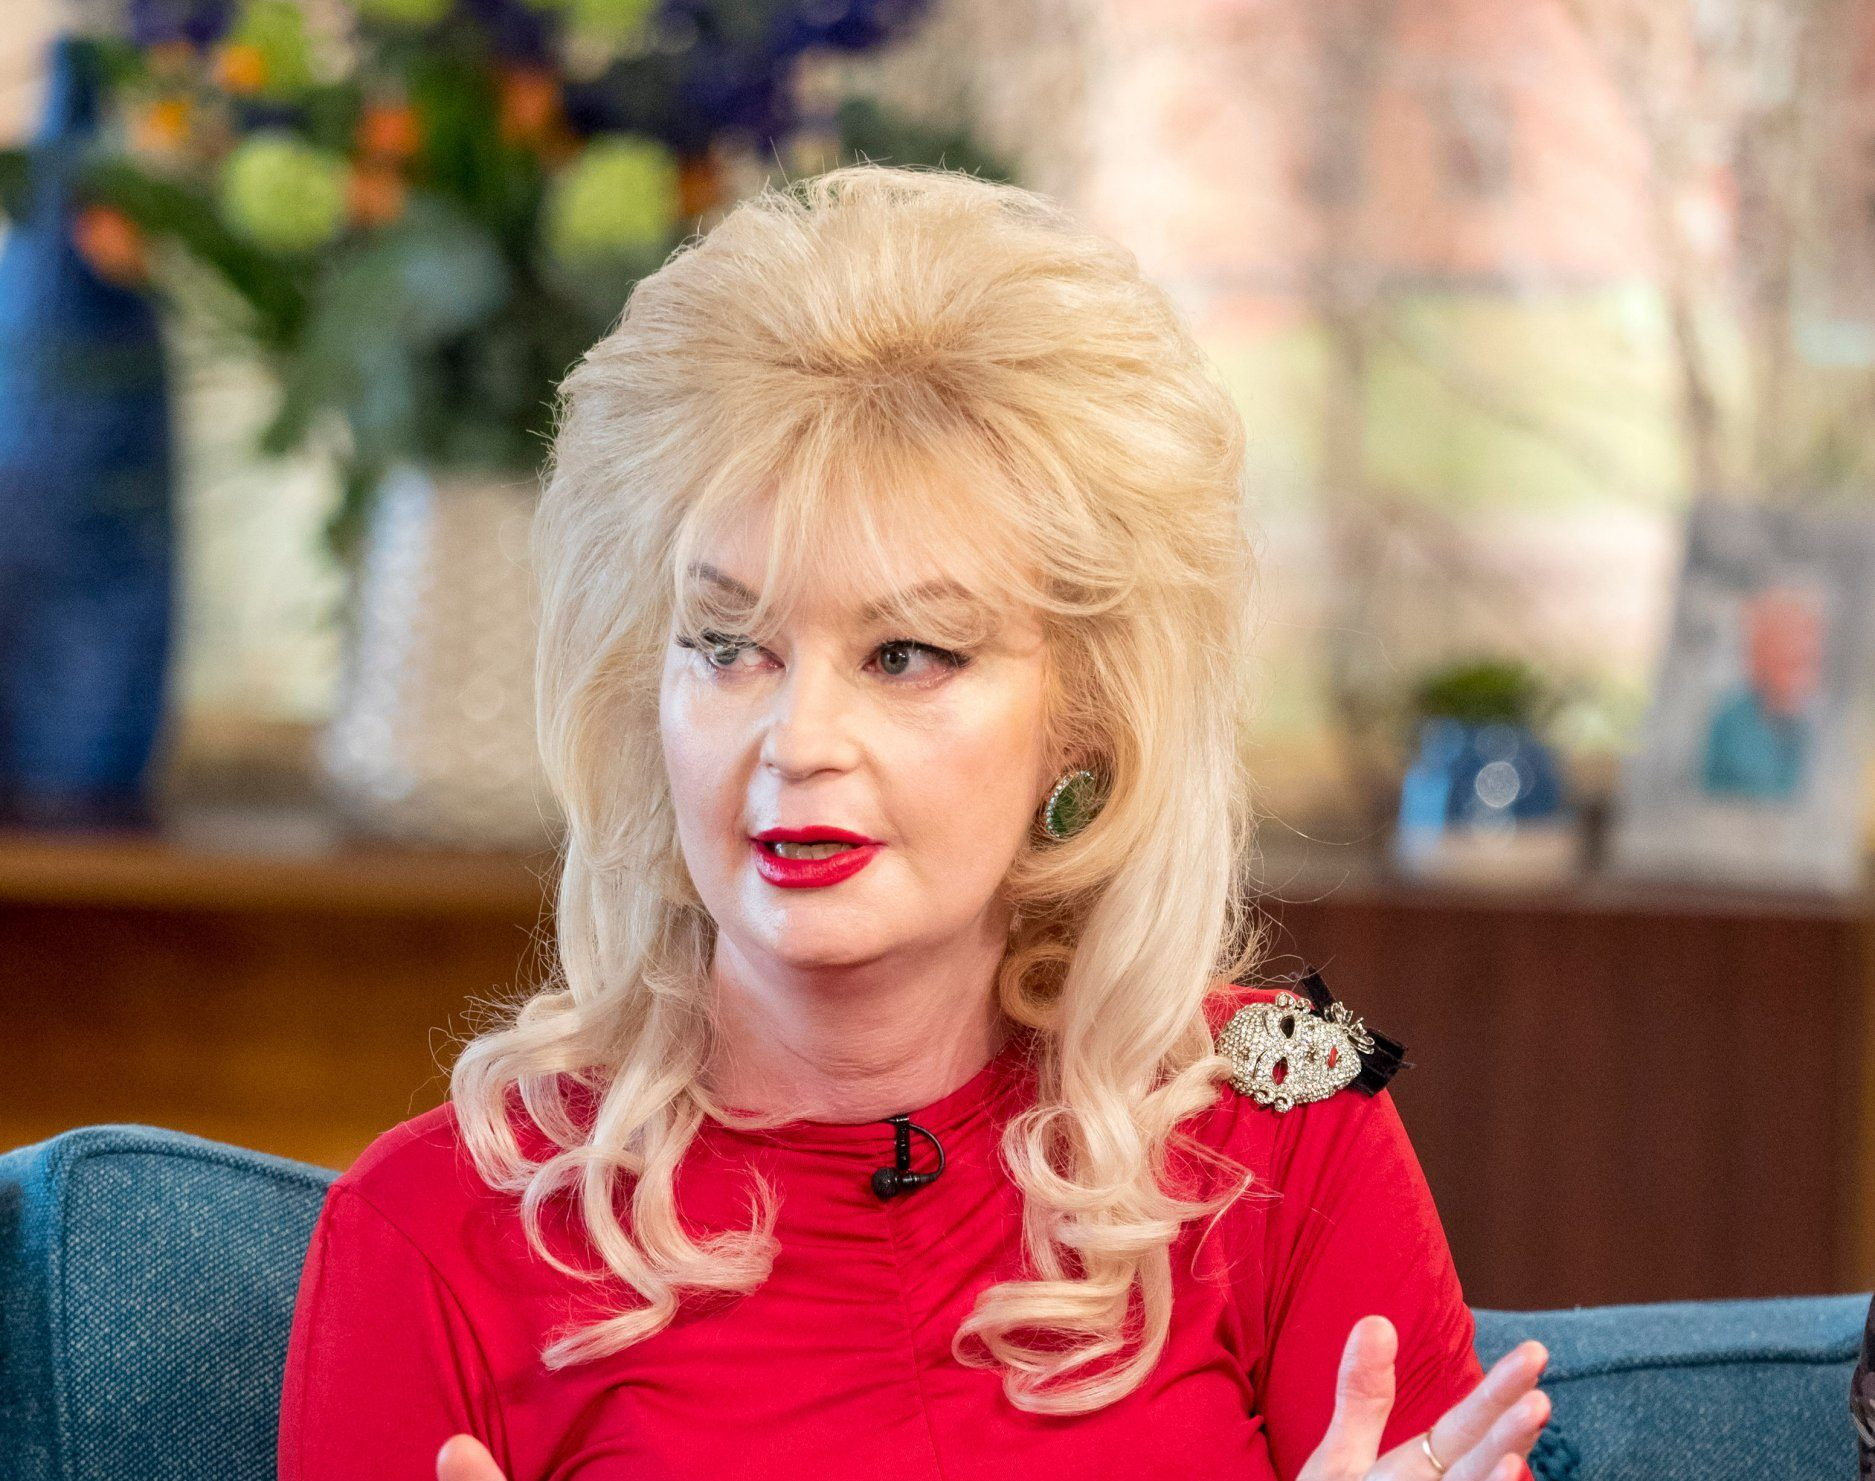 Lauren Harries' mother says 'show business is a drug' after daughter livestreamed intimate moment